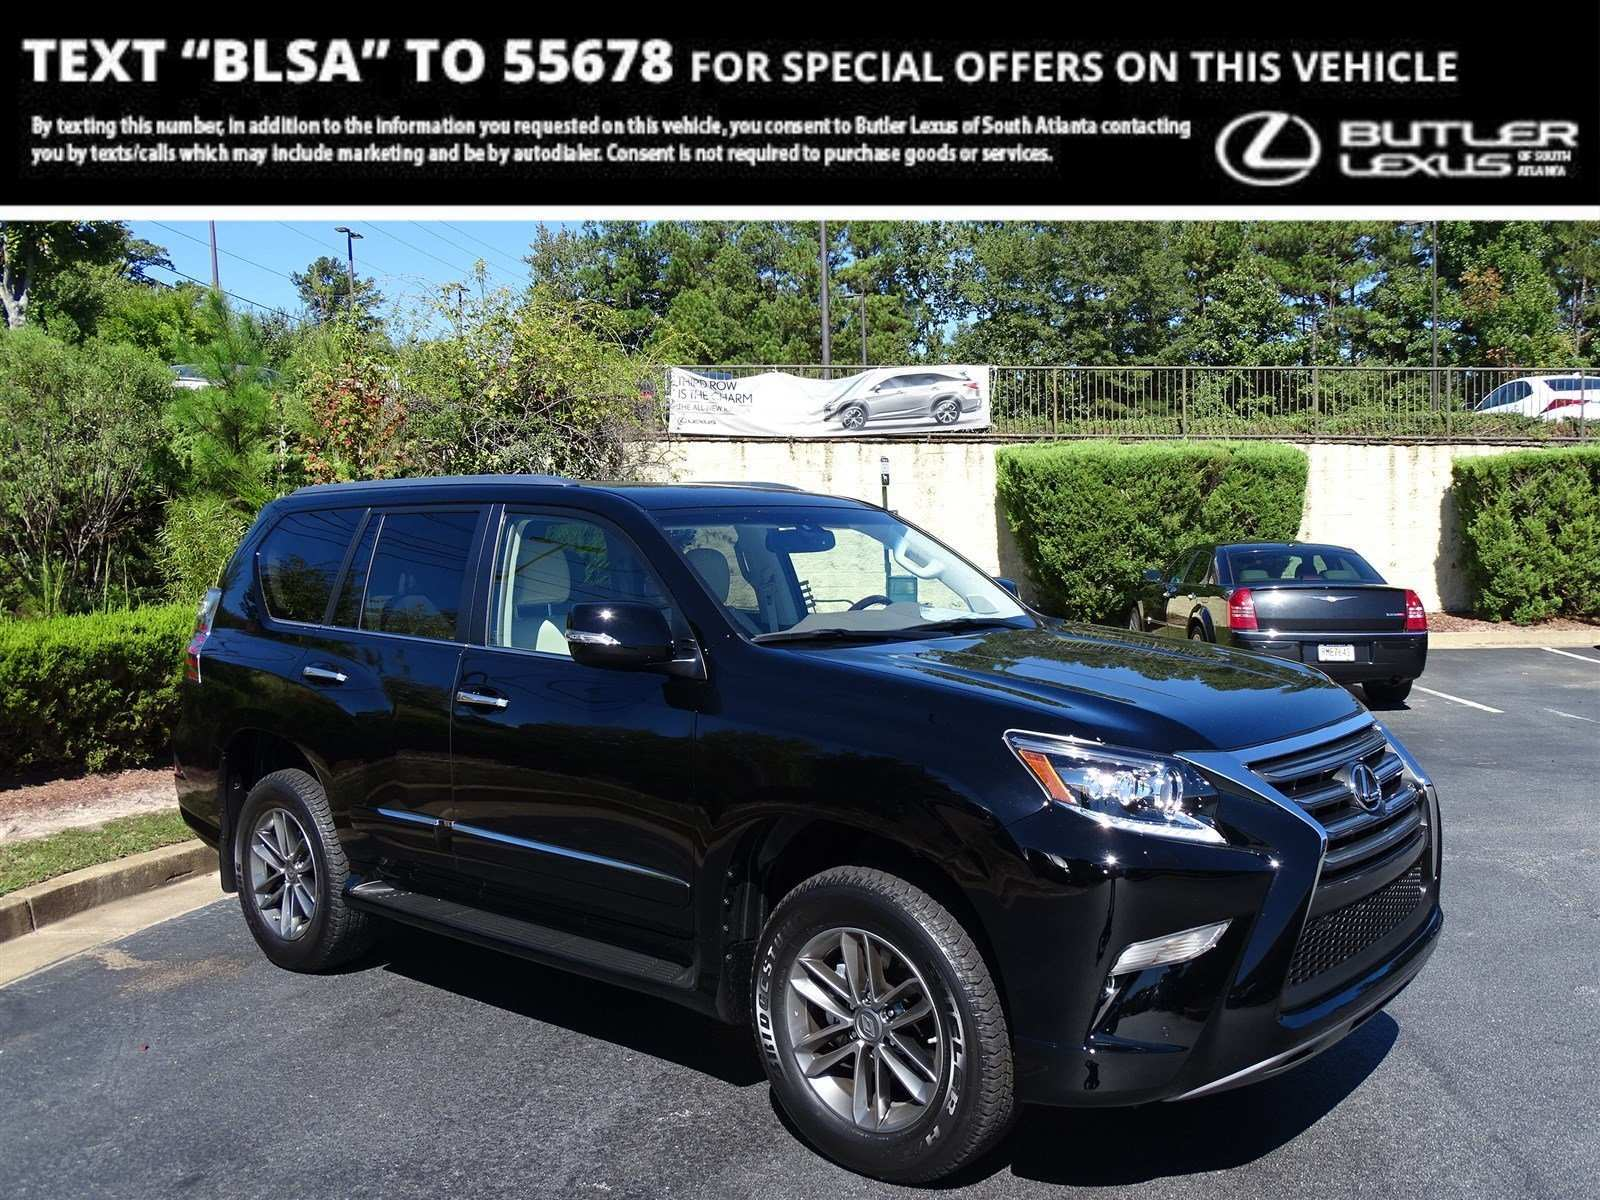 49 The Best 2019 Lexus GX 460 Price And Release Date